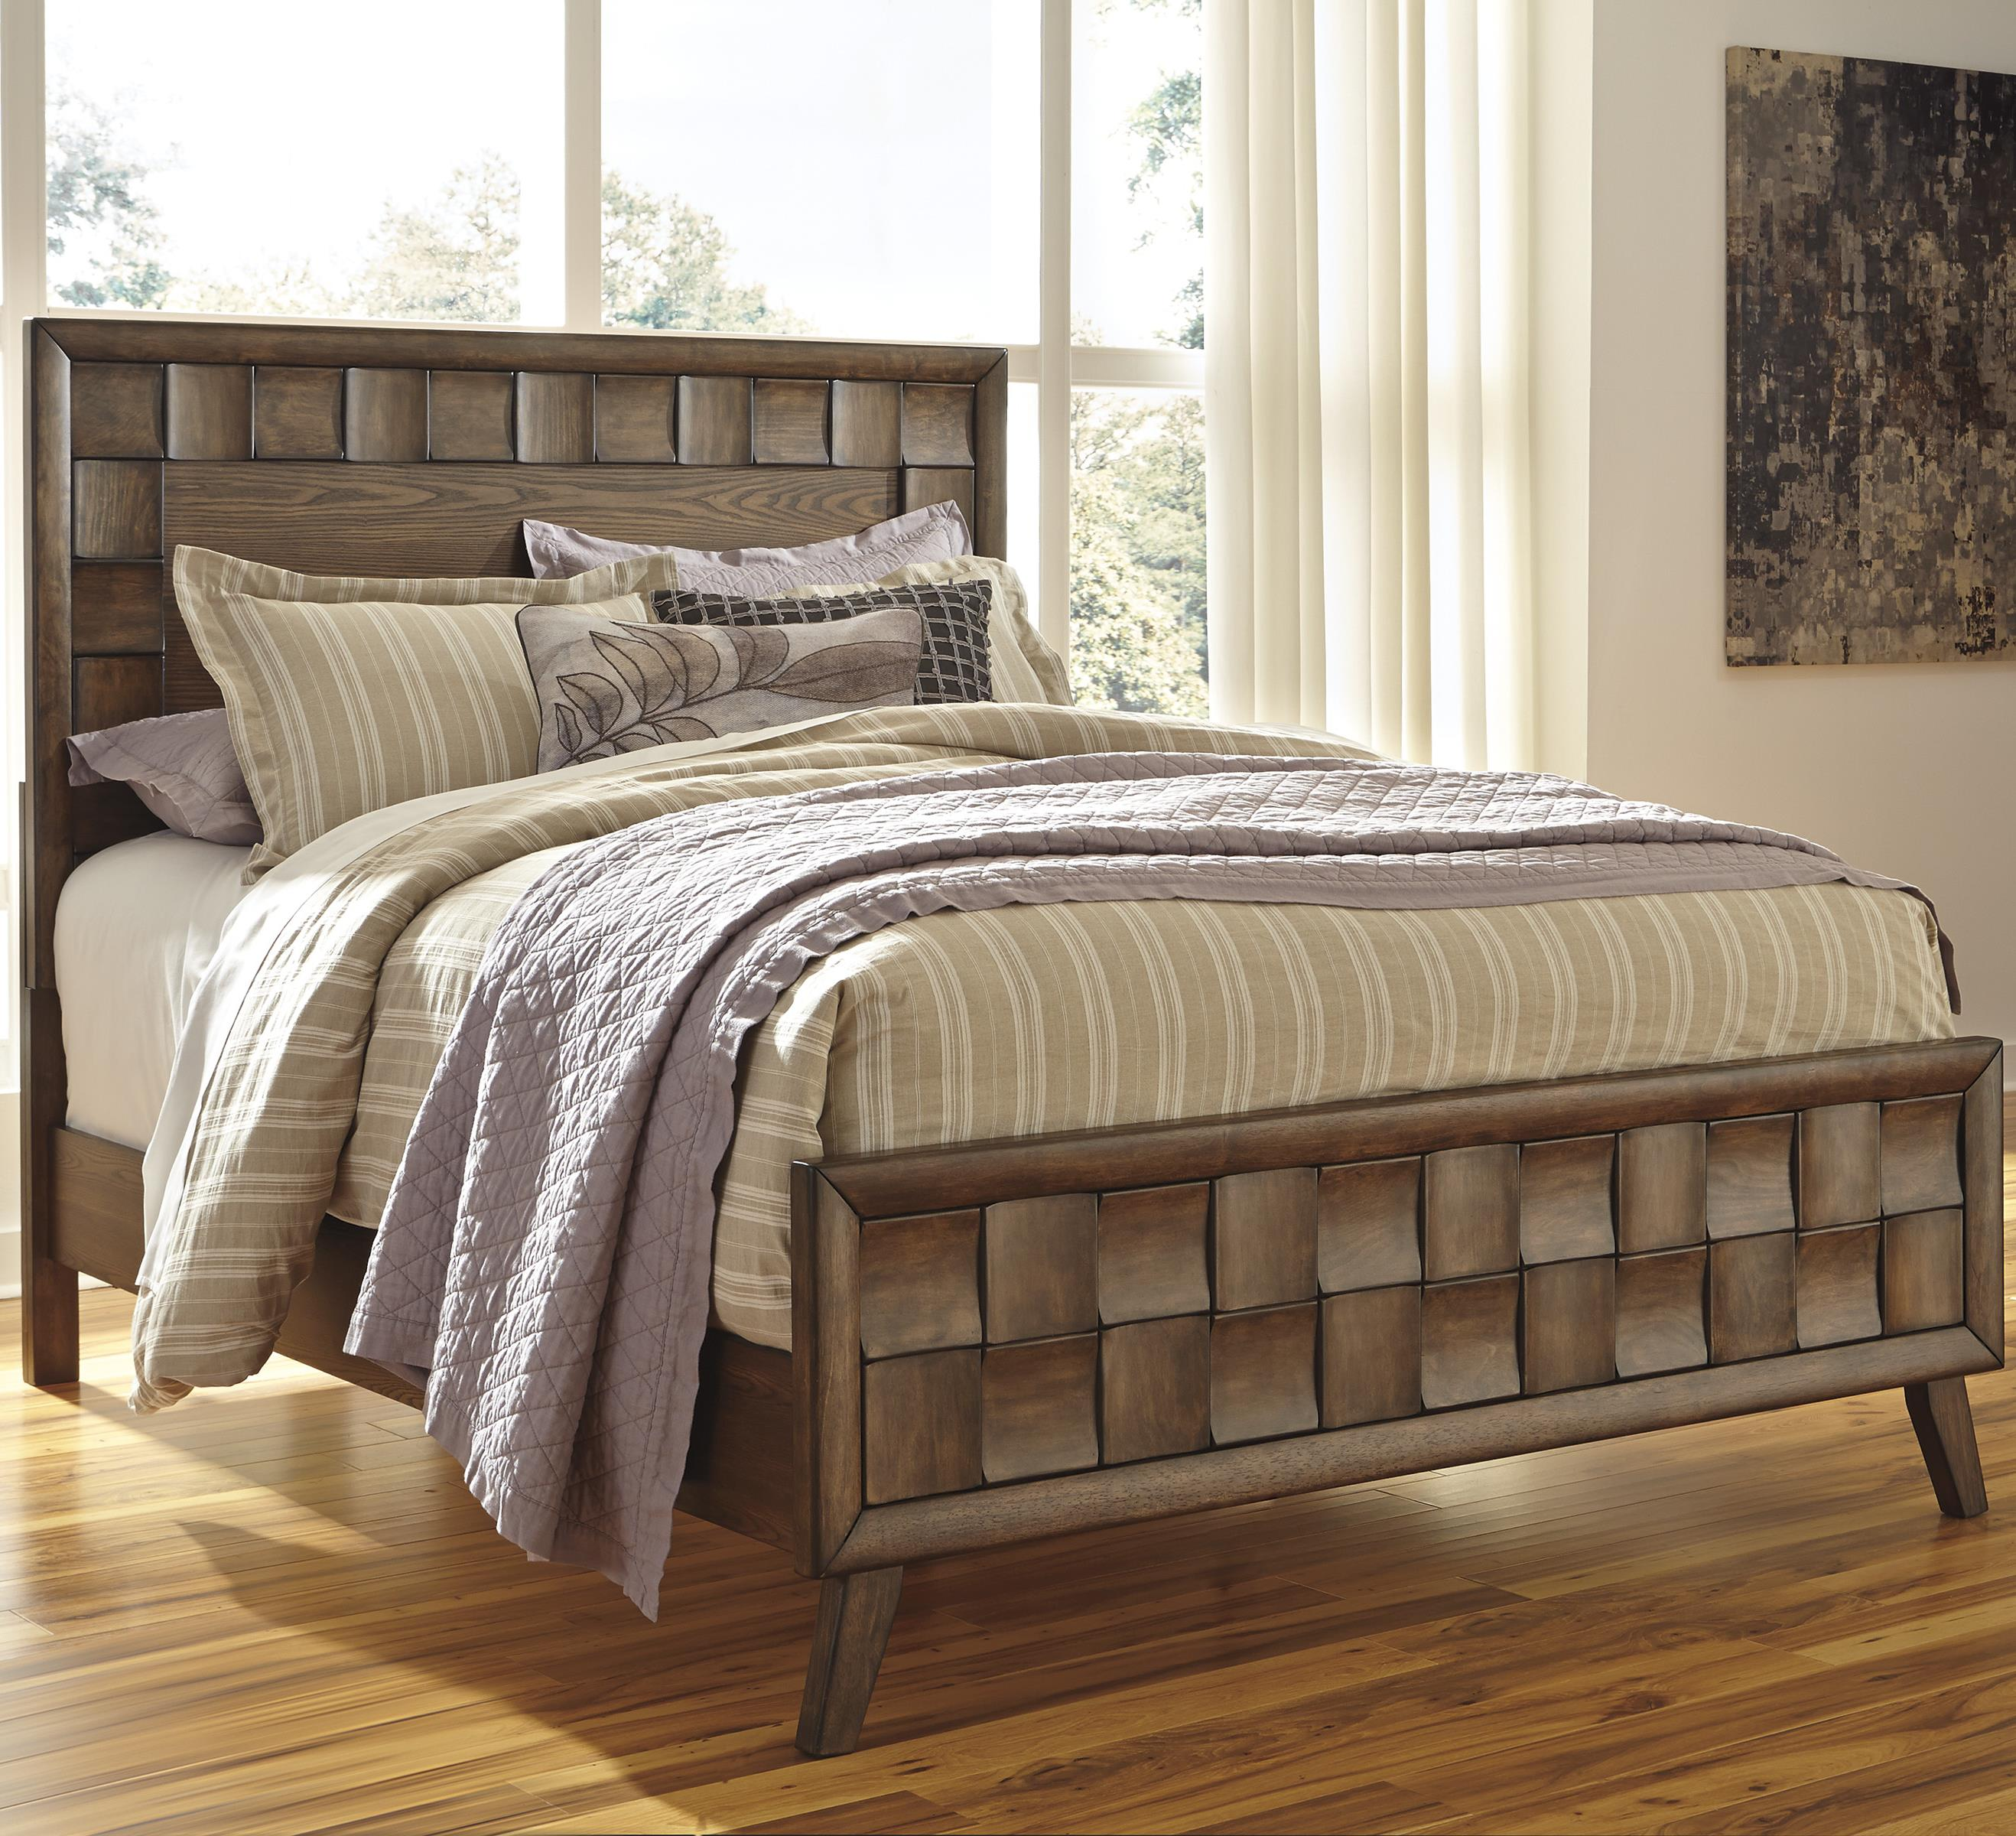 Signature Design by Ashley Debeaux California King Wood Panel Bed - Item Number: B535-58+56+94